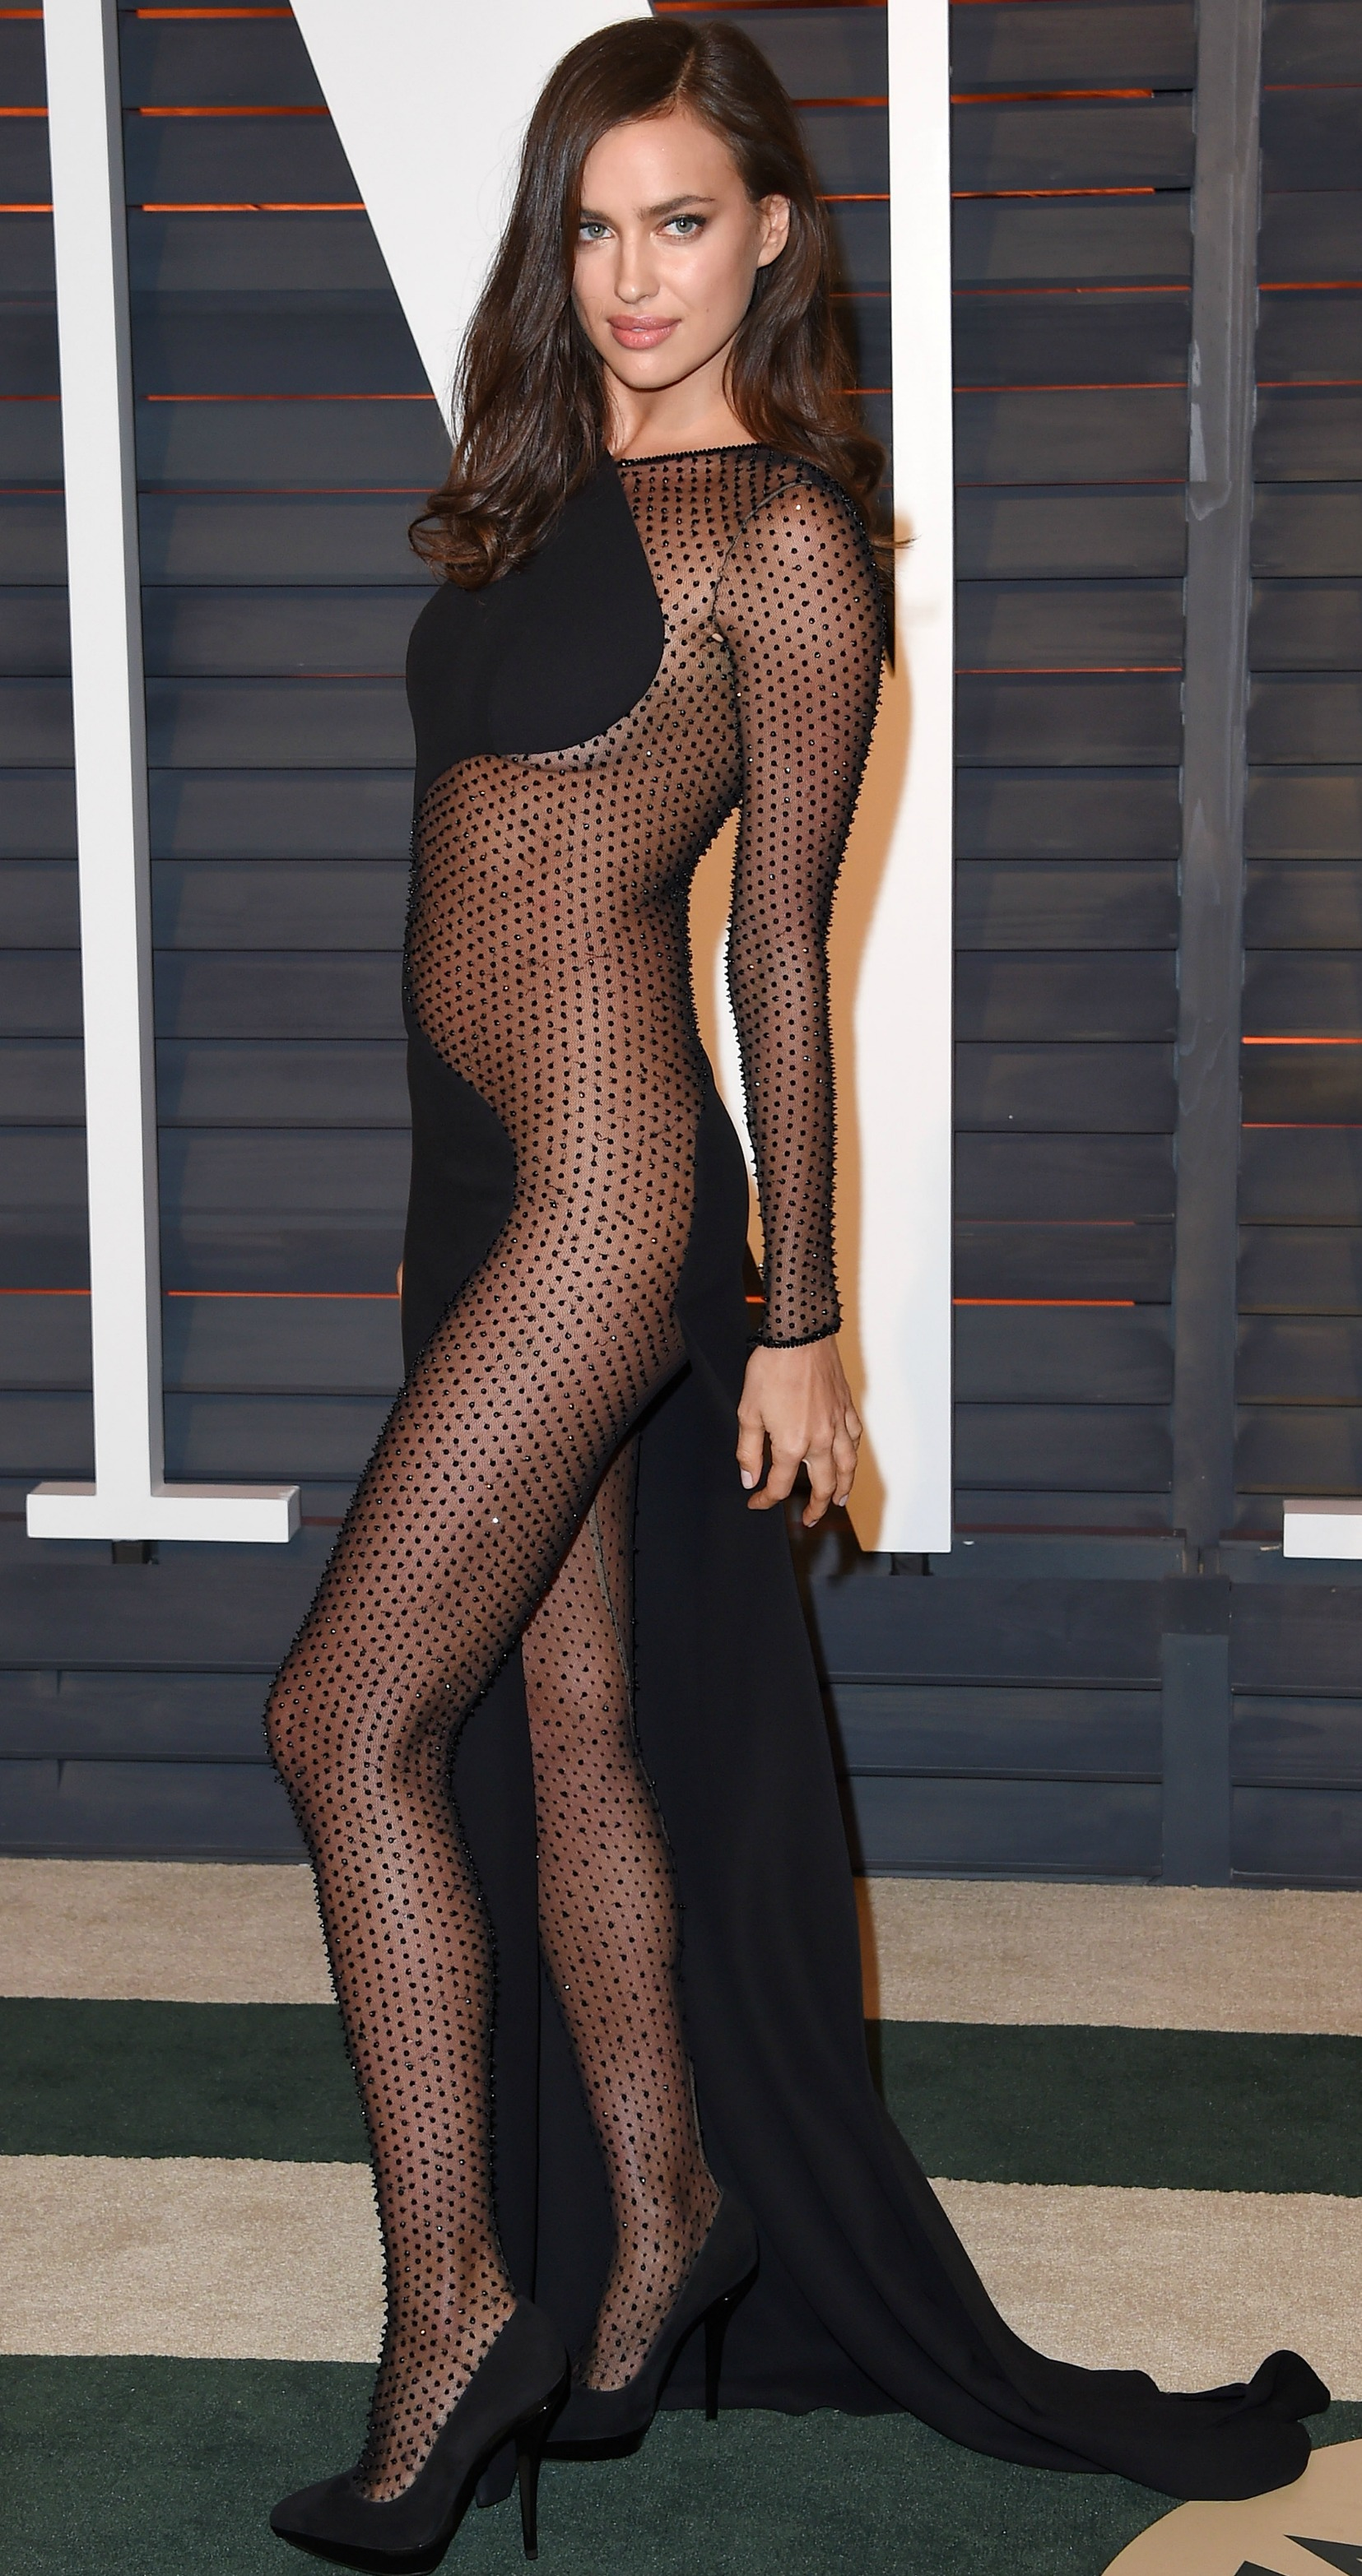 All Celebrity Naked Photos the 21 most shocking celebrity naked dresses that we're